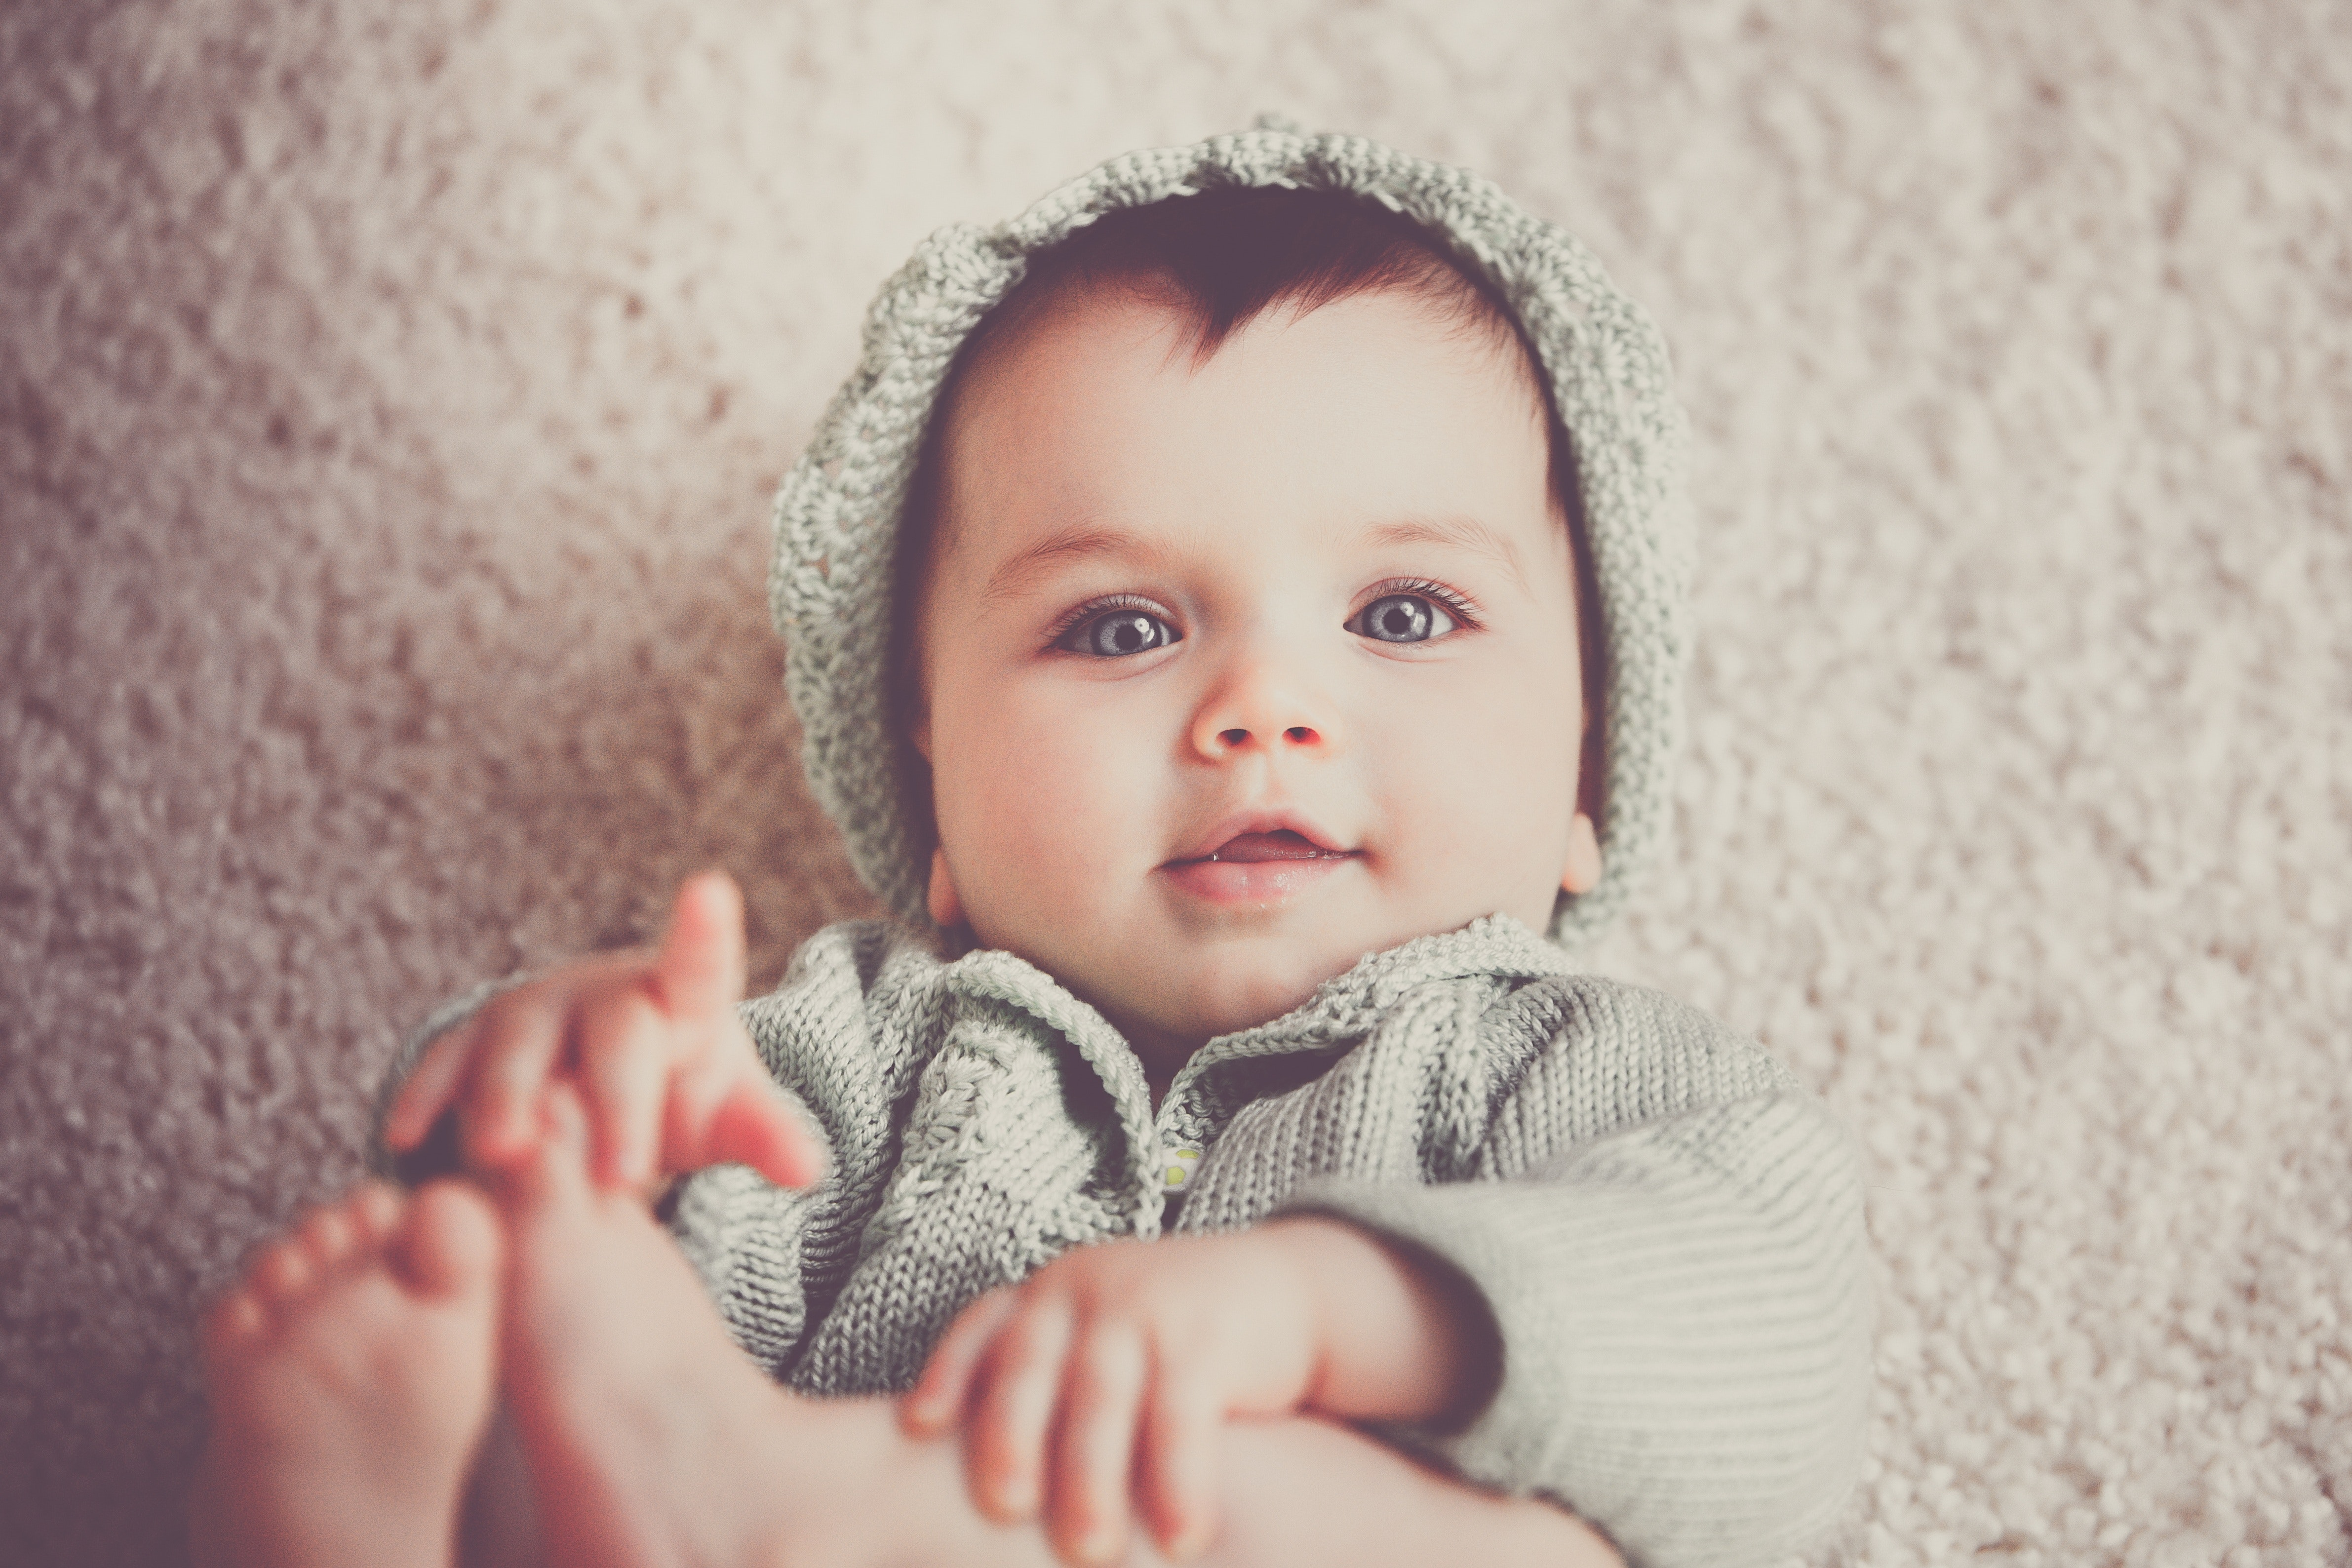 baby on gray knit hooded clothes lying on carpet free stock photo